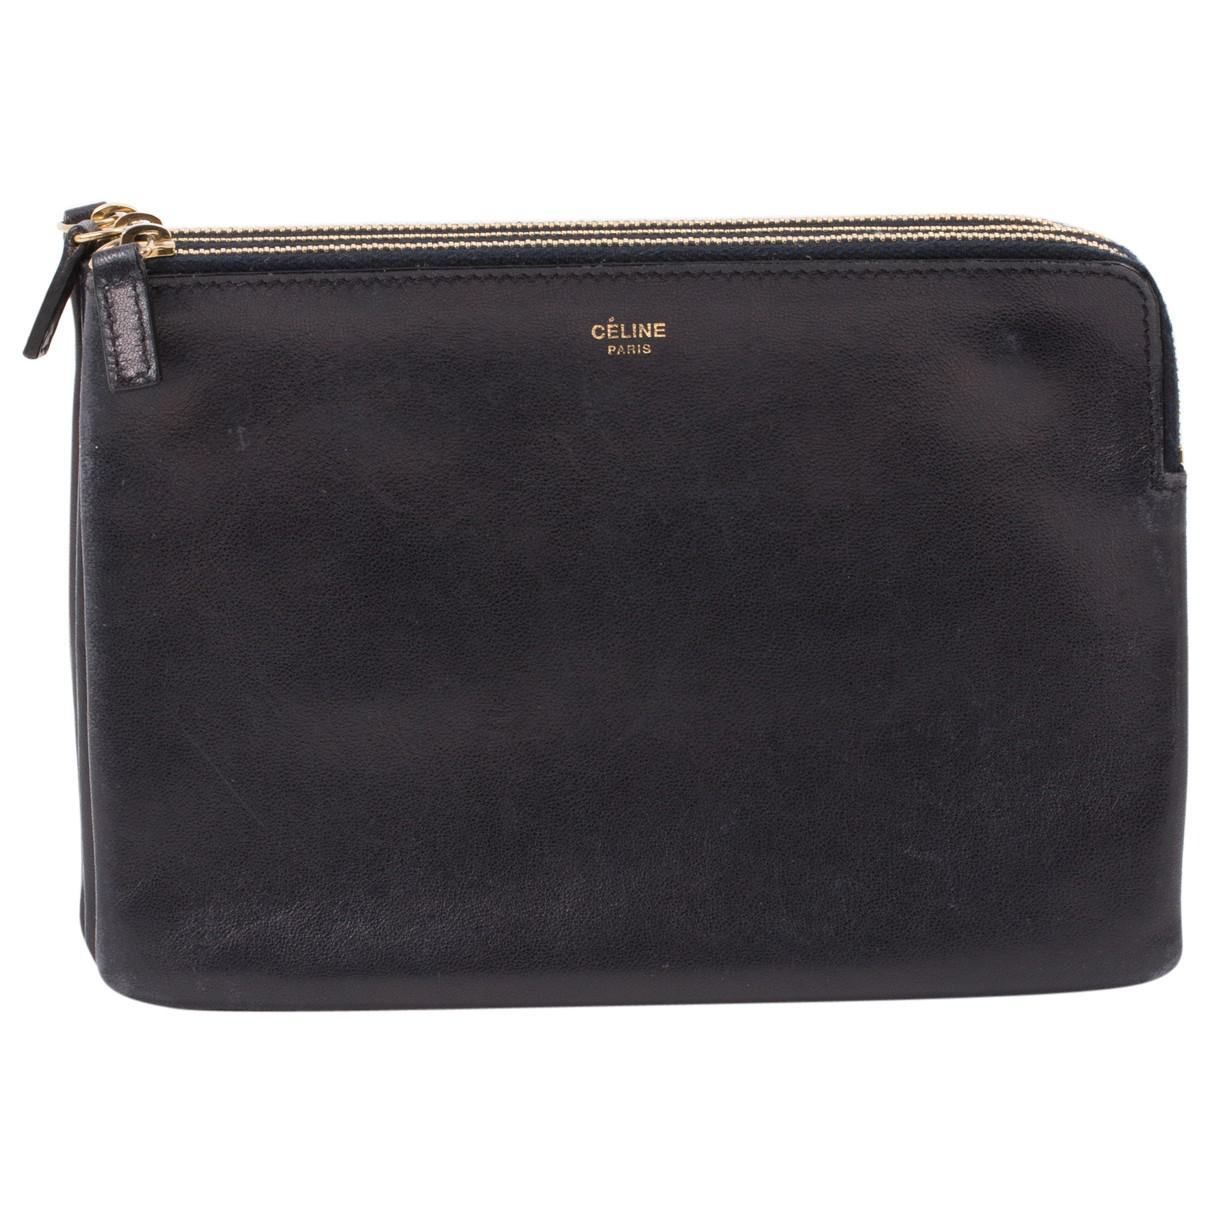 Pre-owned - Trio leather clutch bag Celine eesVOUxFp